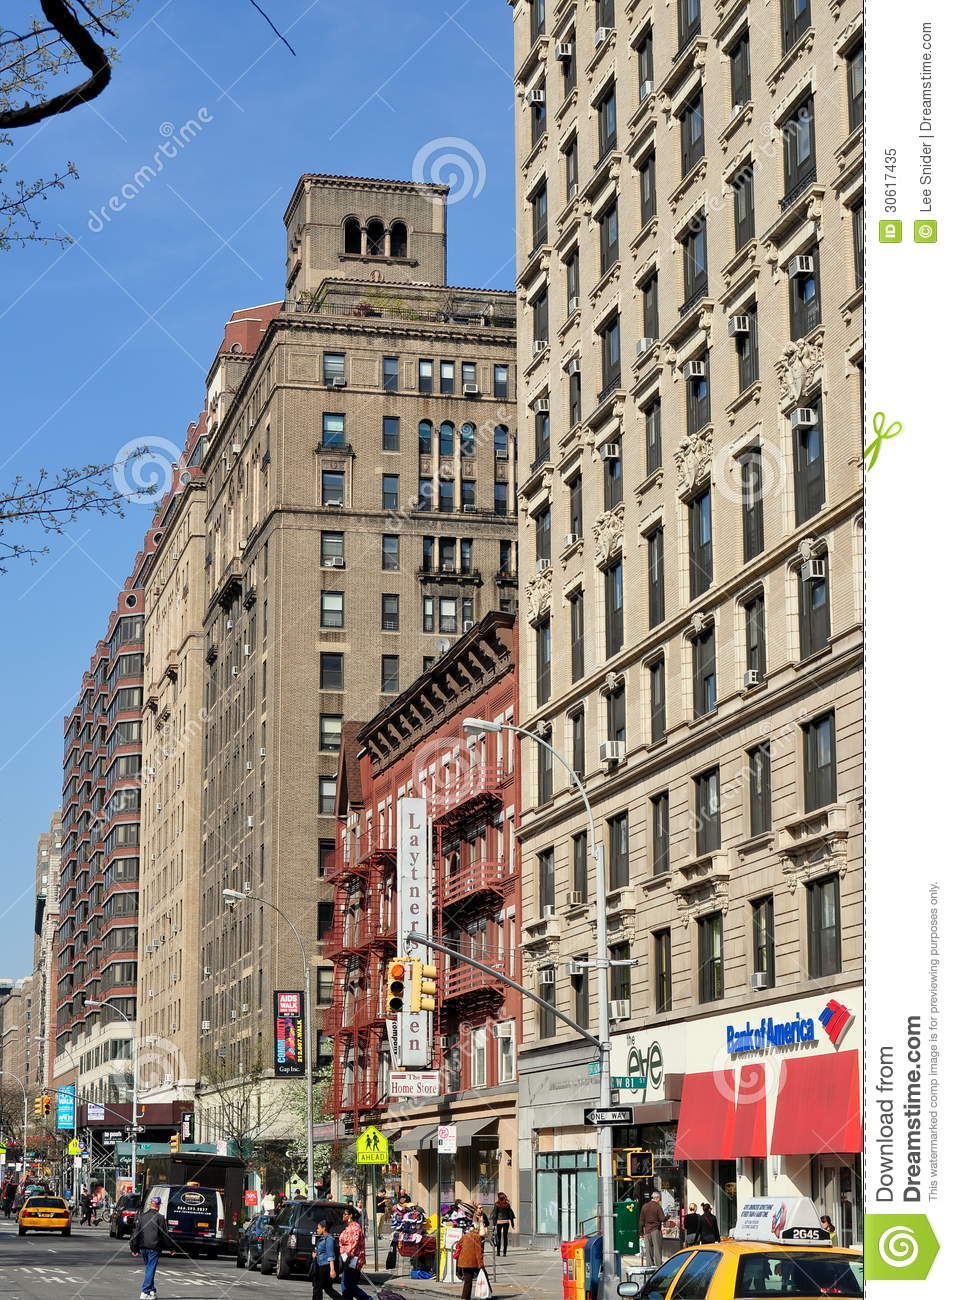 View Looking North Along Upper Broadway From West 81st Street Lined With Upscale Apartment Buildings In New York City